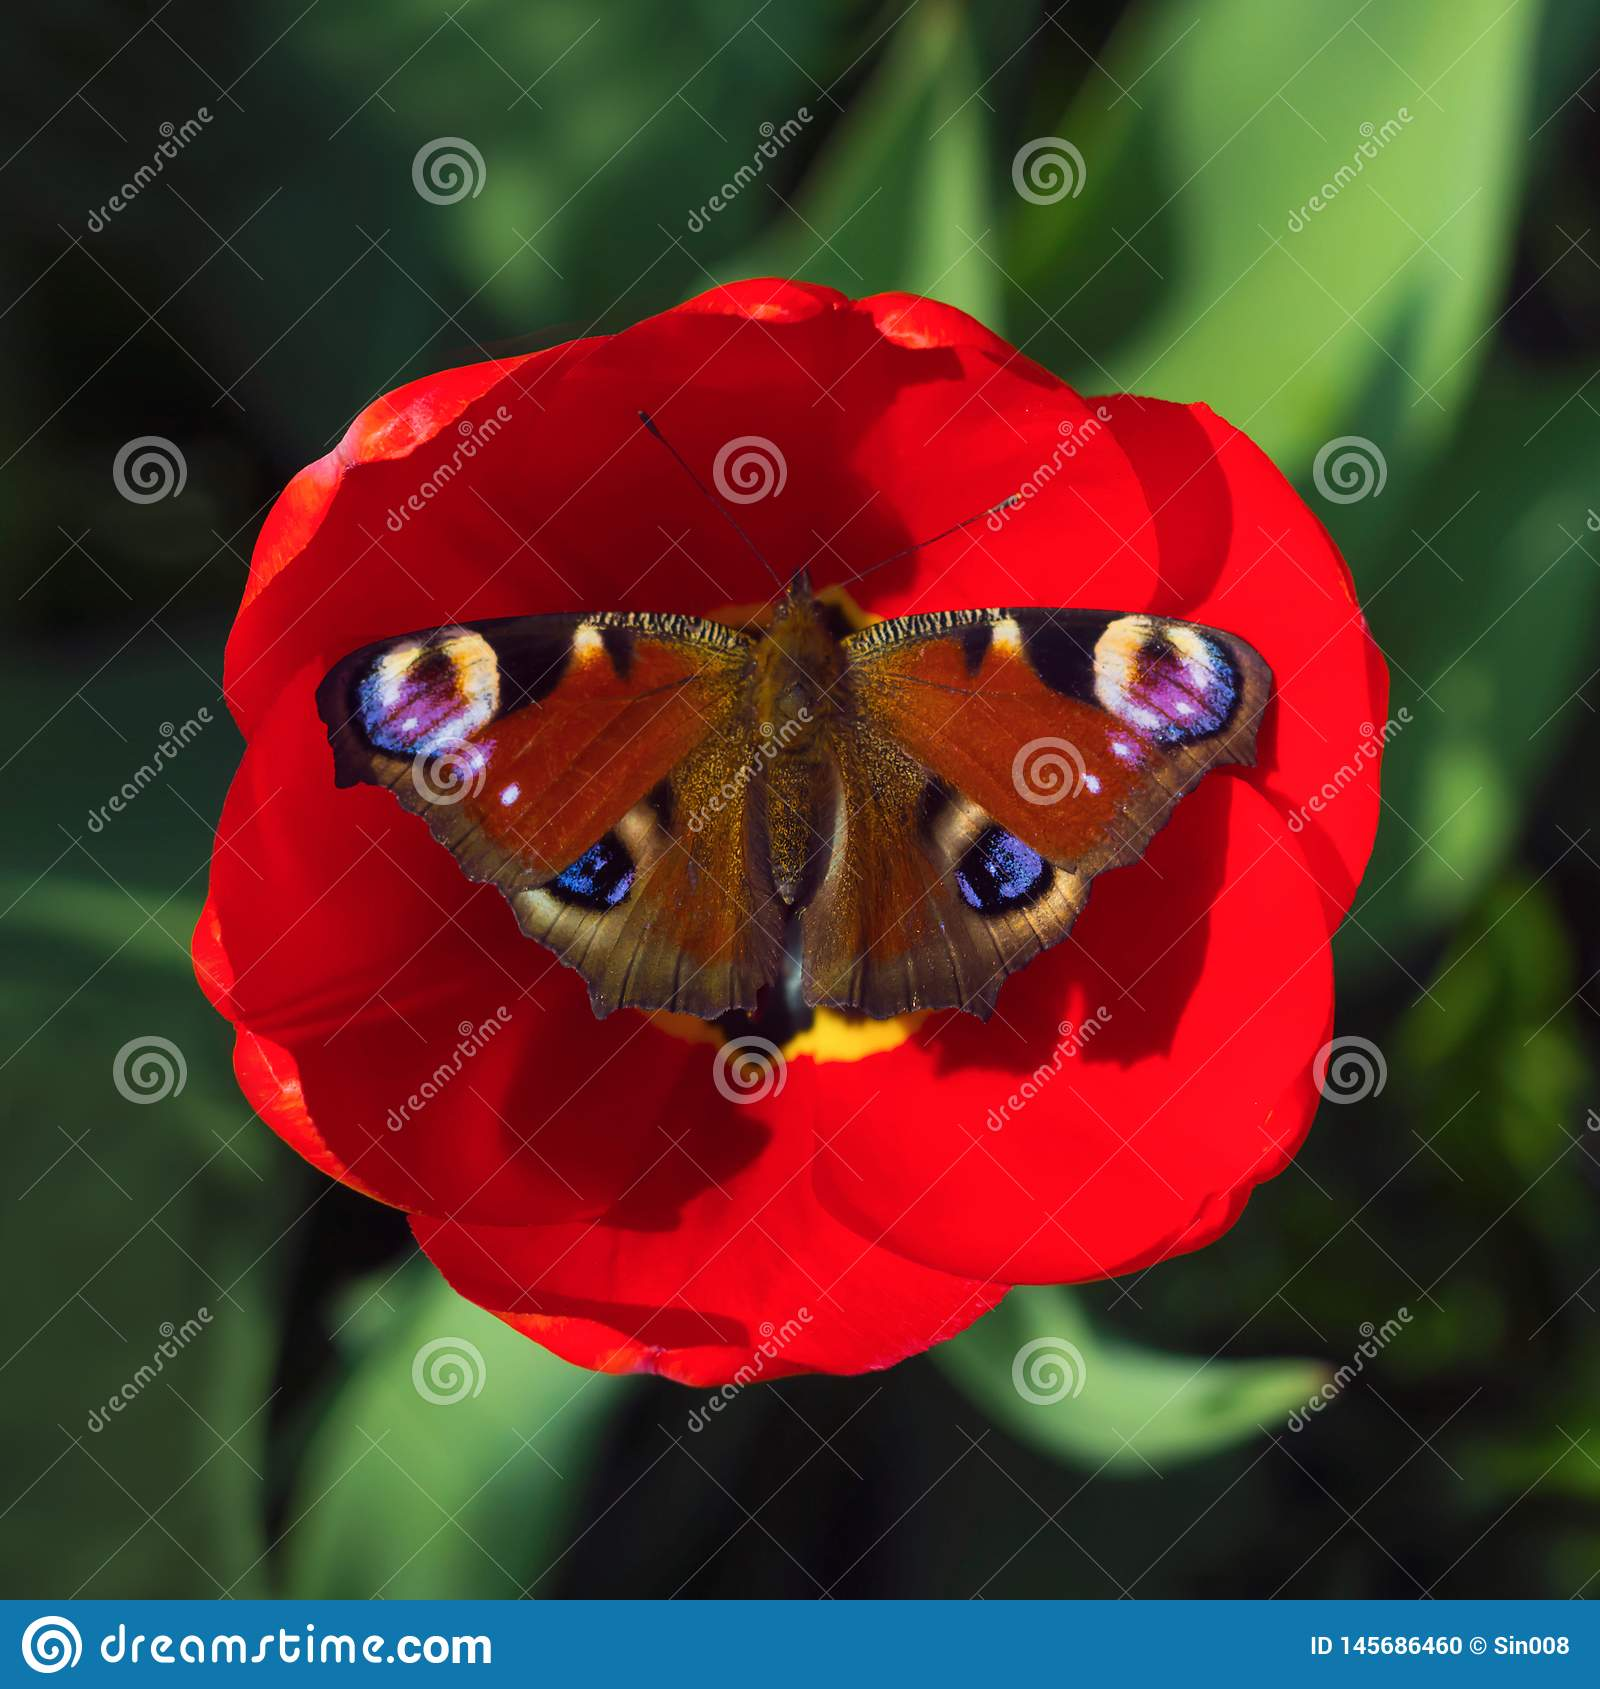 Peacock butterfly resting on a red Tulip flower on a green blurred background. Sunny summer day. Macro photo, top view close up